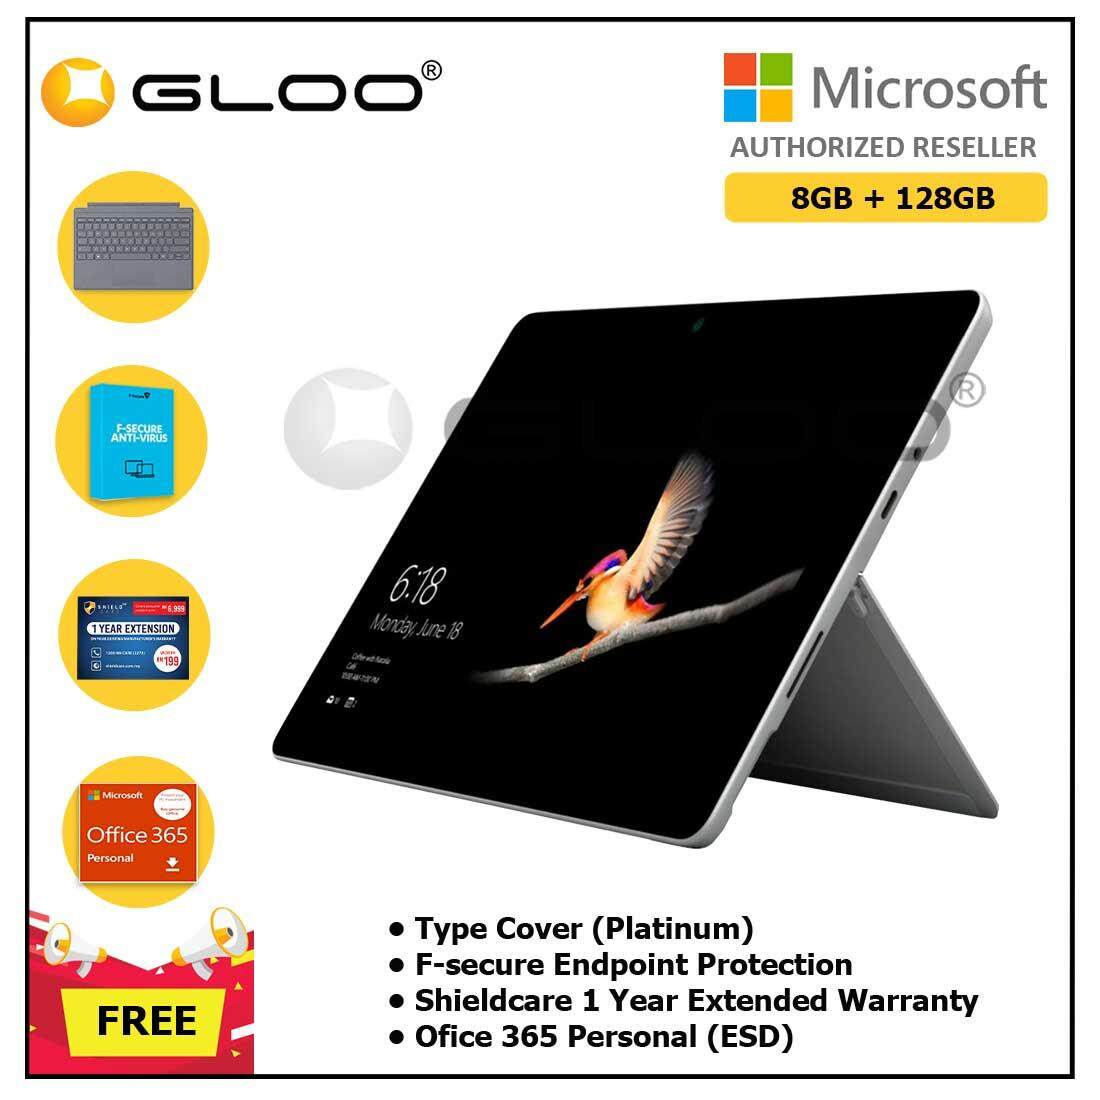 Surface Go Y/8GB 128GB + Surface Go Type Cover Platinum + Shieldcare 1 Year Extended Warranty + F-Secure EndPoint Protection + Office 365 Personal ESD